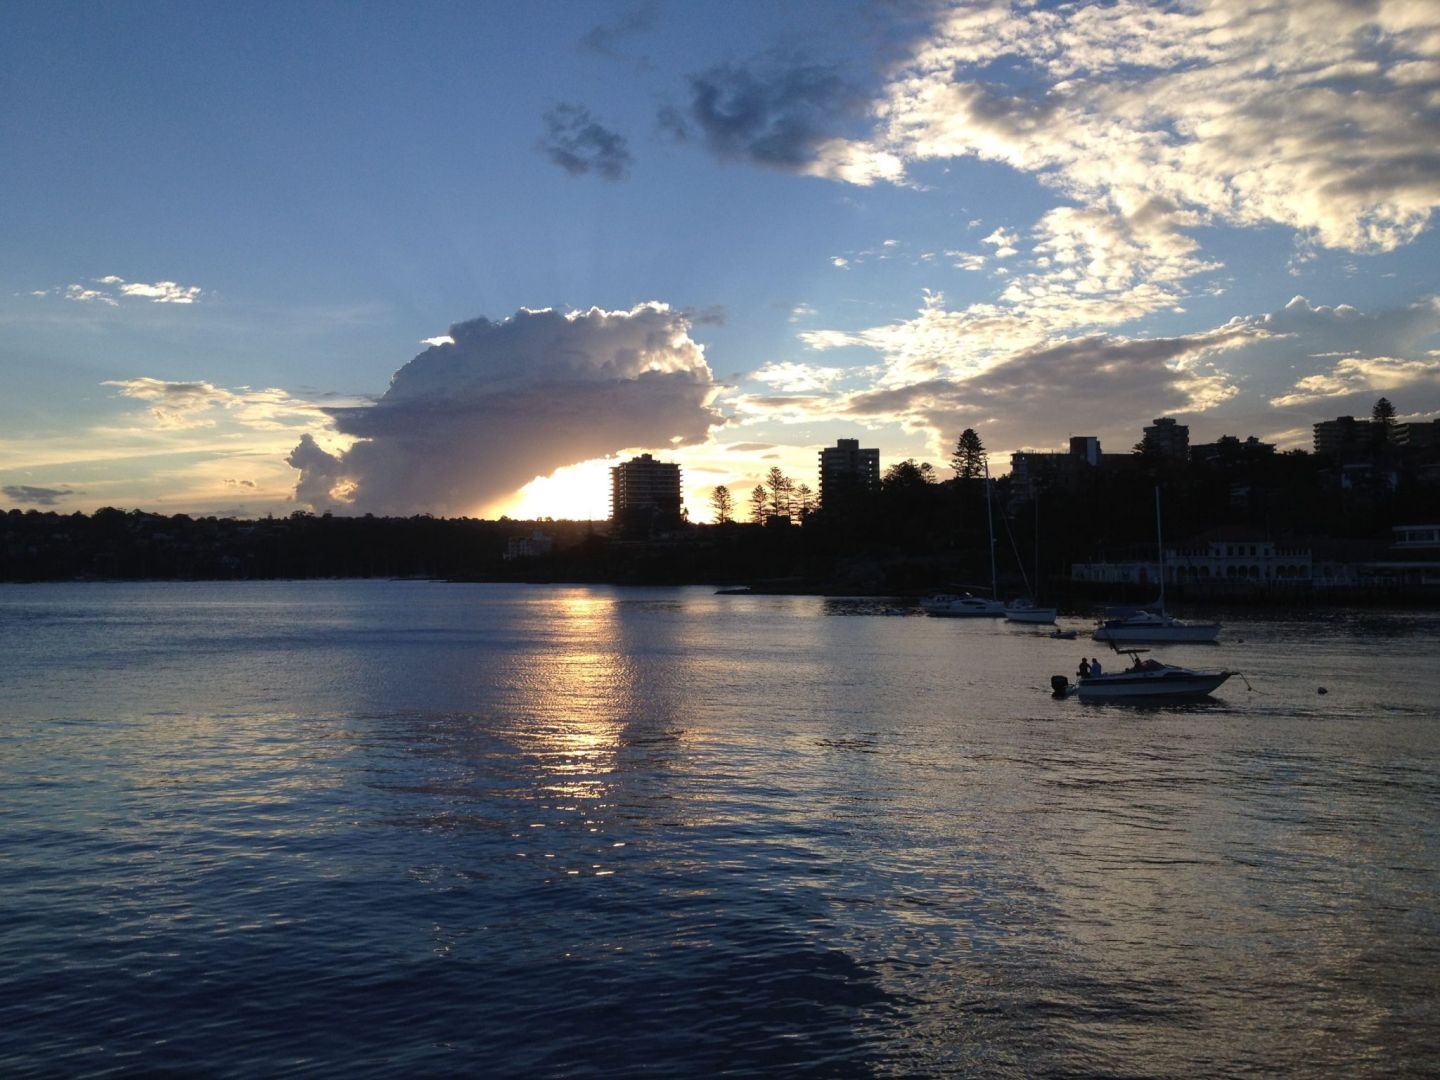 Views from Manly Ferry, Sydney